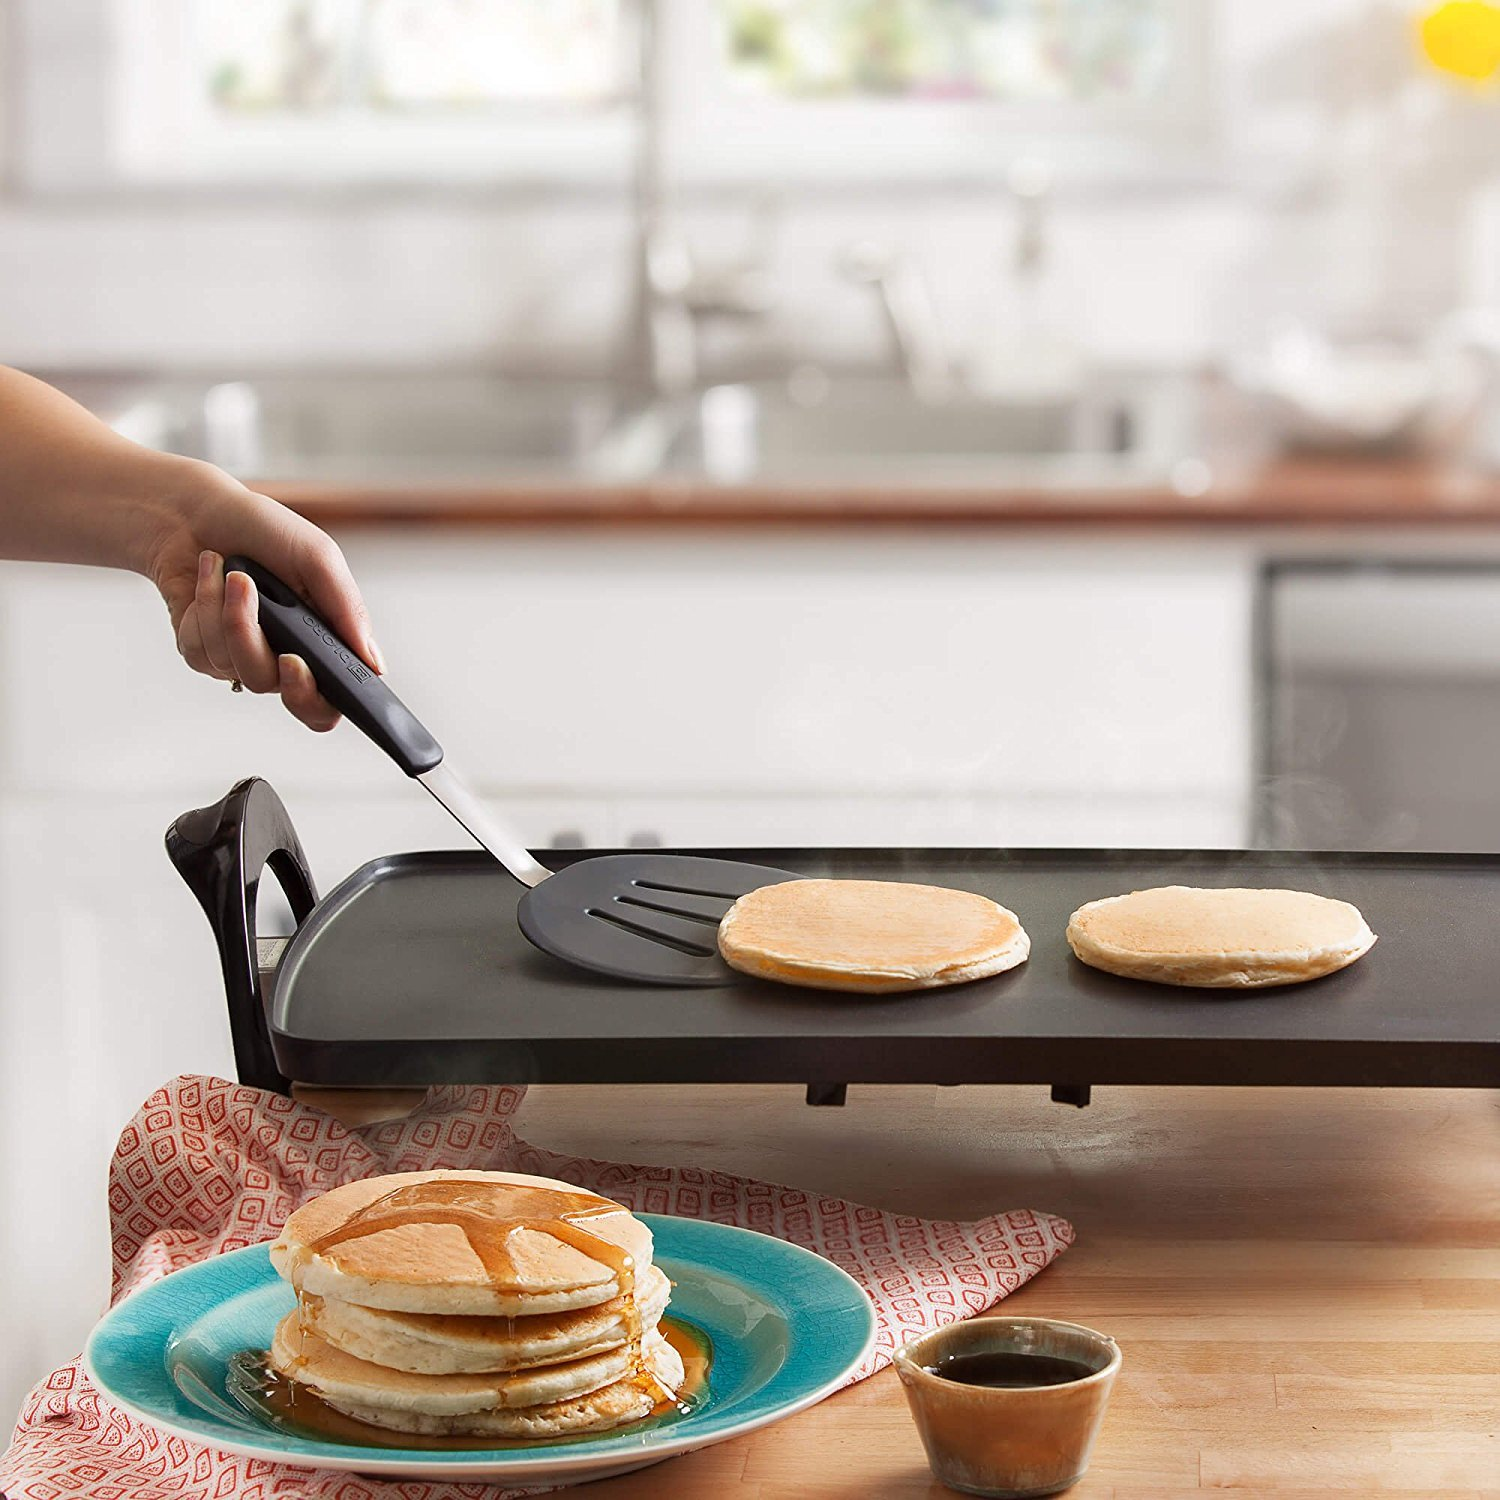 DI ORO Chef Series 3-Piece Silicone Turner Spatula Set - 600ºF Heat-Resistant Flexible Rubber Silicone Spatulas - Best Silicone Cooking Utensil Set - Egg Turners, Pancake Flippers, Kitchen Spatulas by di Oro Living (Image #4)